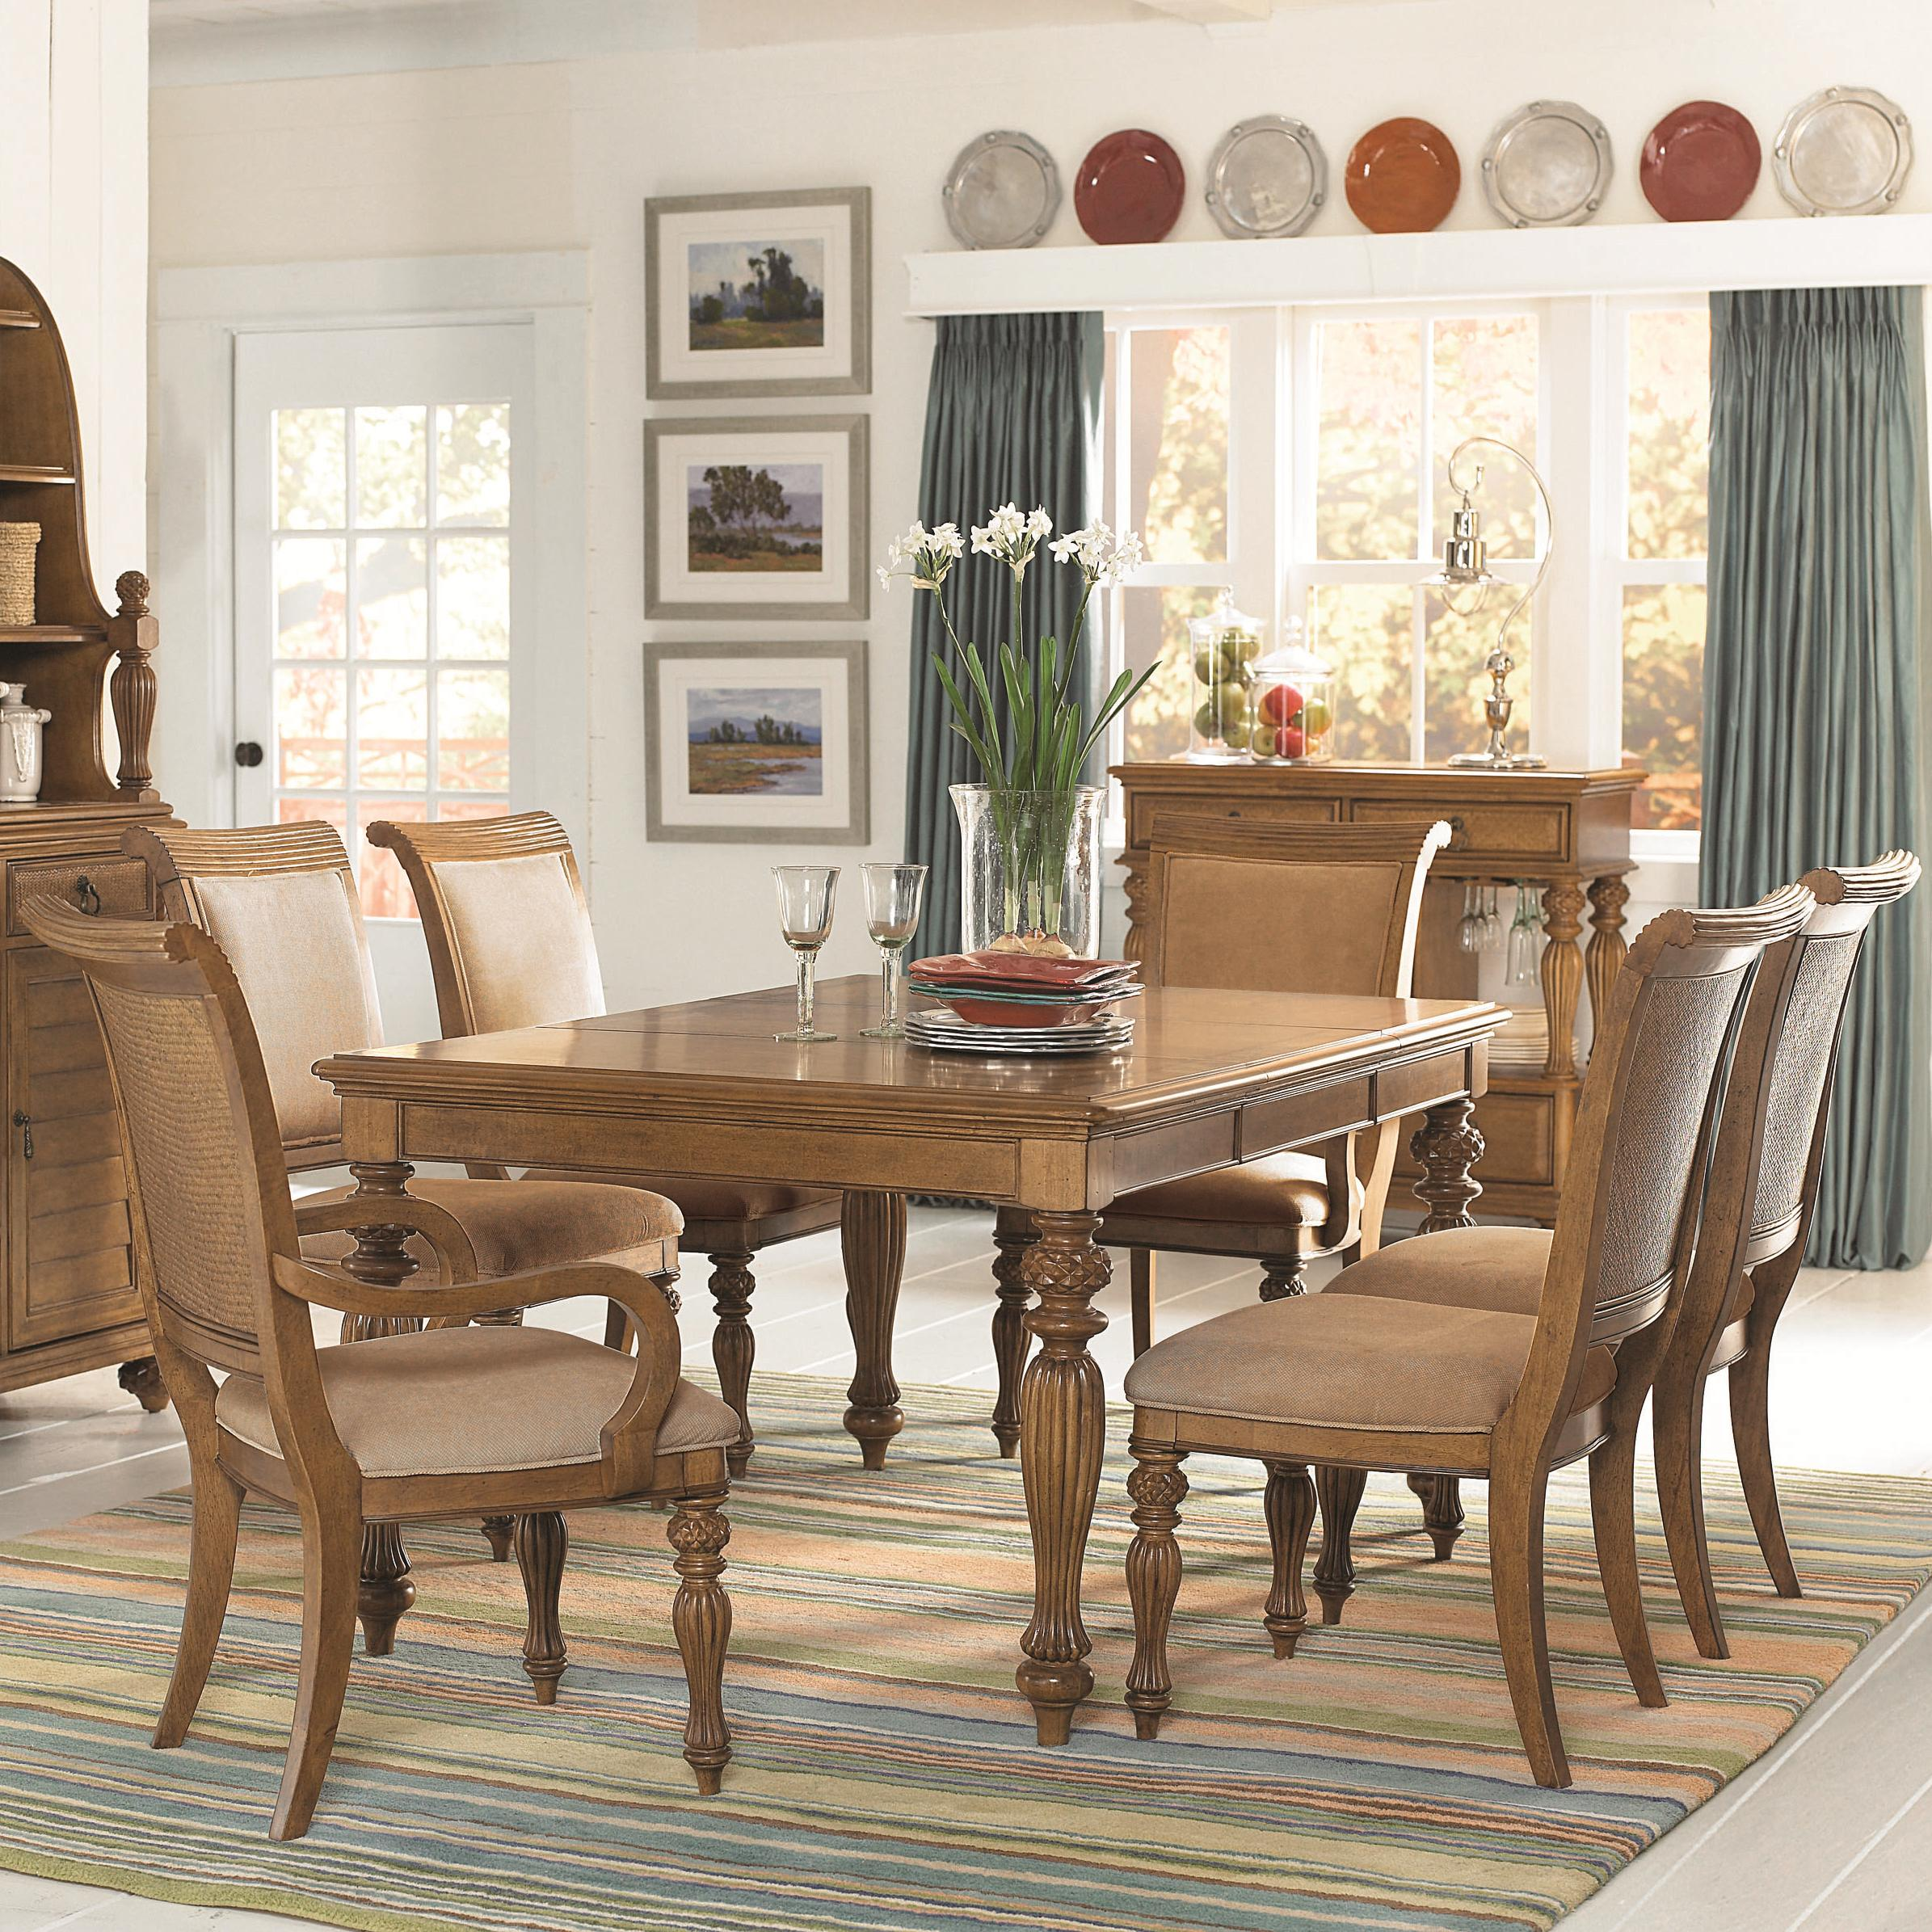 American Drew Dining Room Furniture: 7-Piece Rectangular Turned/Carved Leg Dining Table With